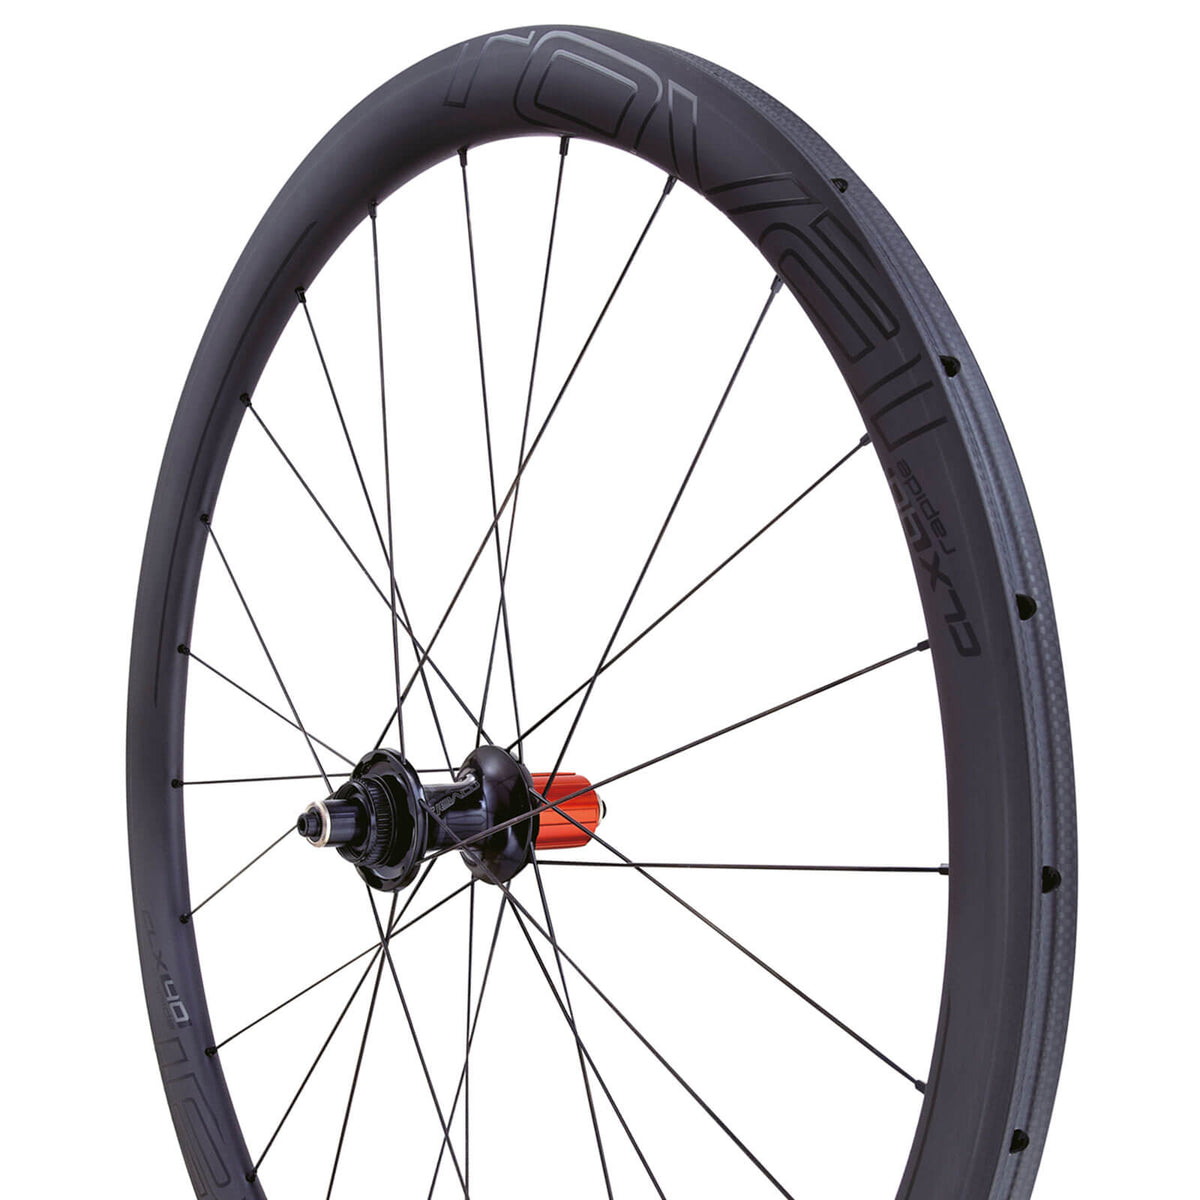 CLX 40 Tubular rear wheel